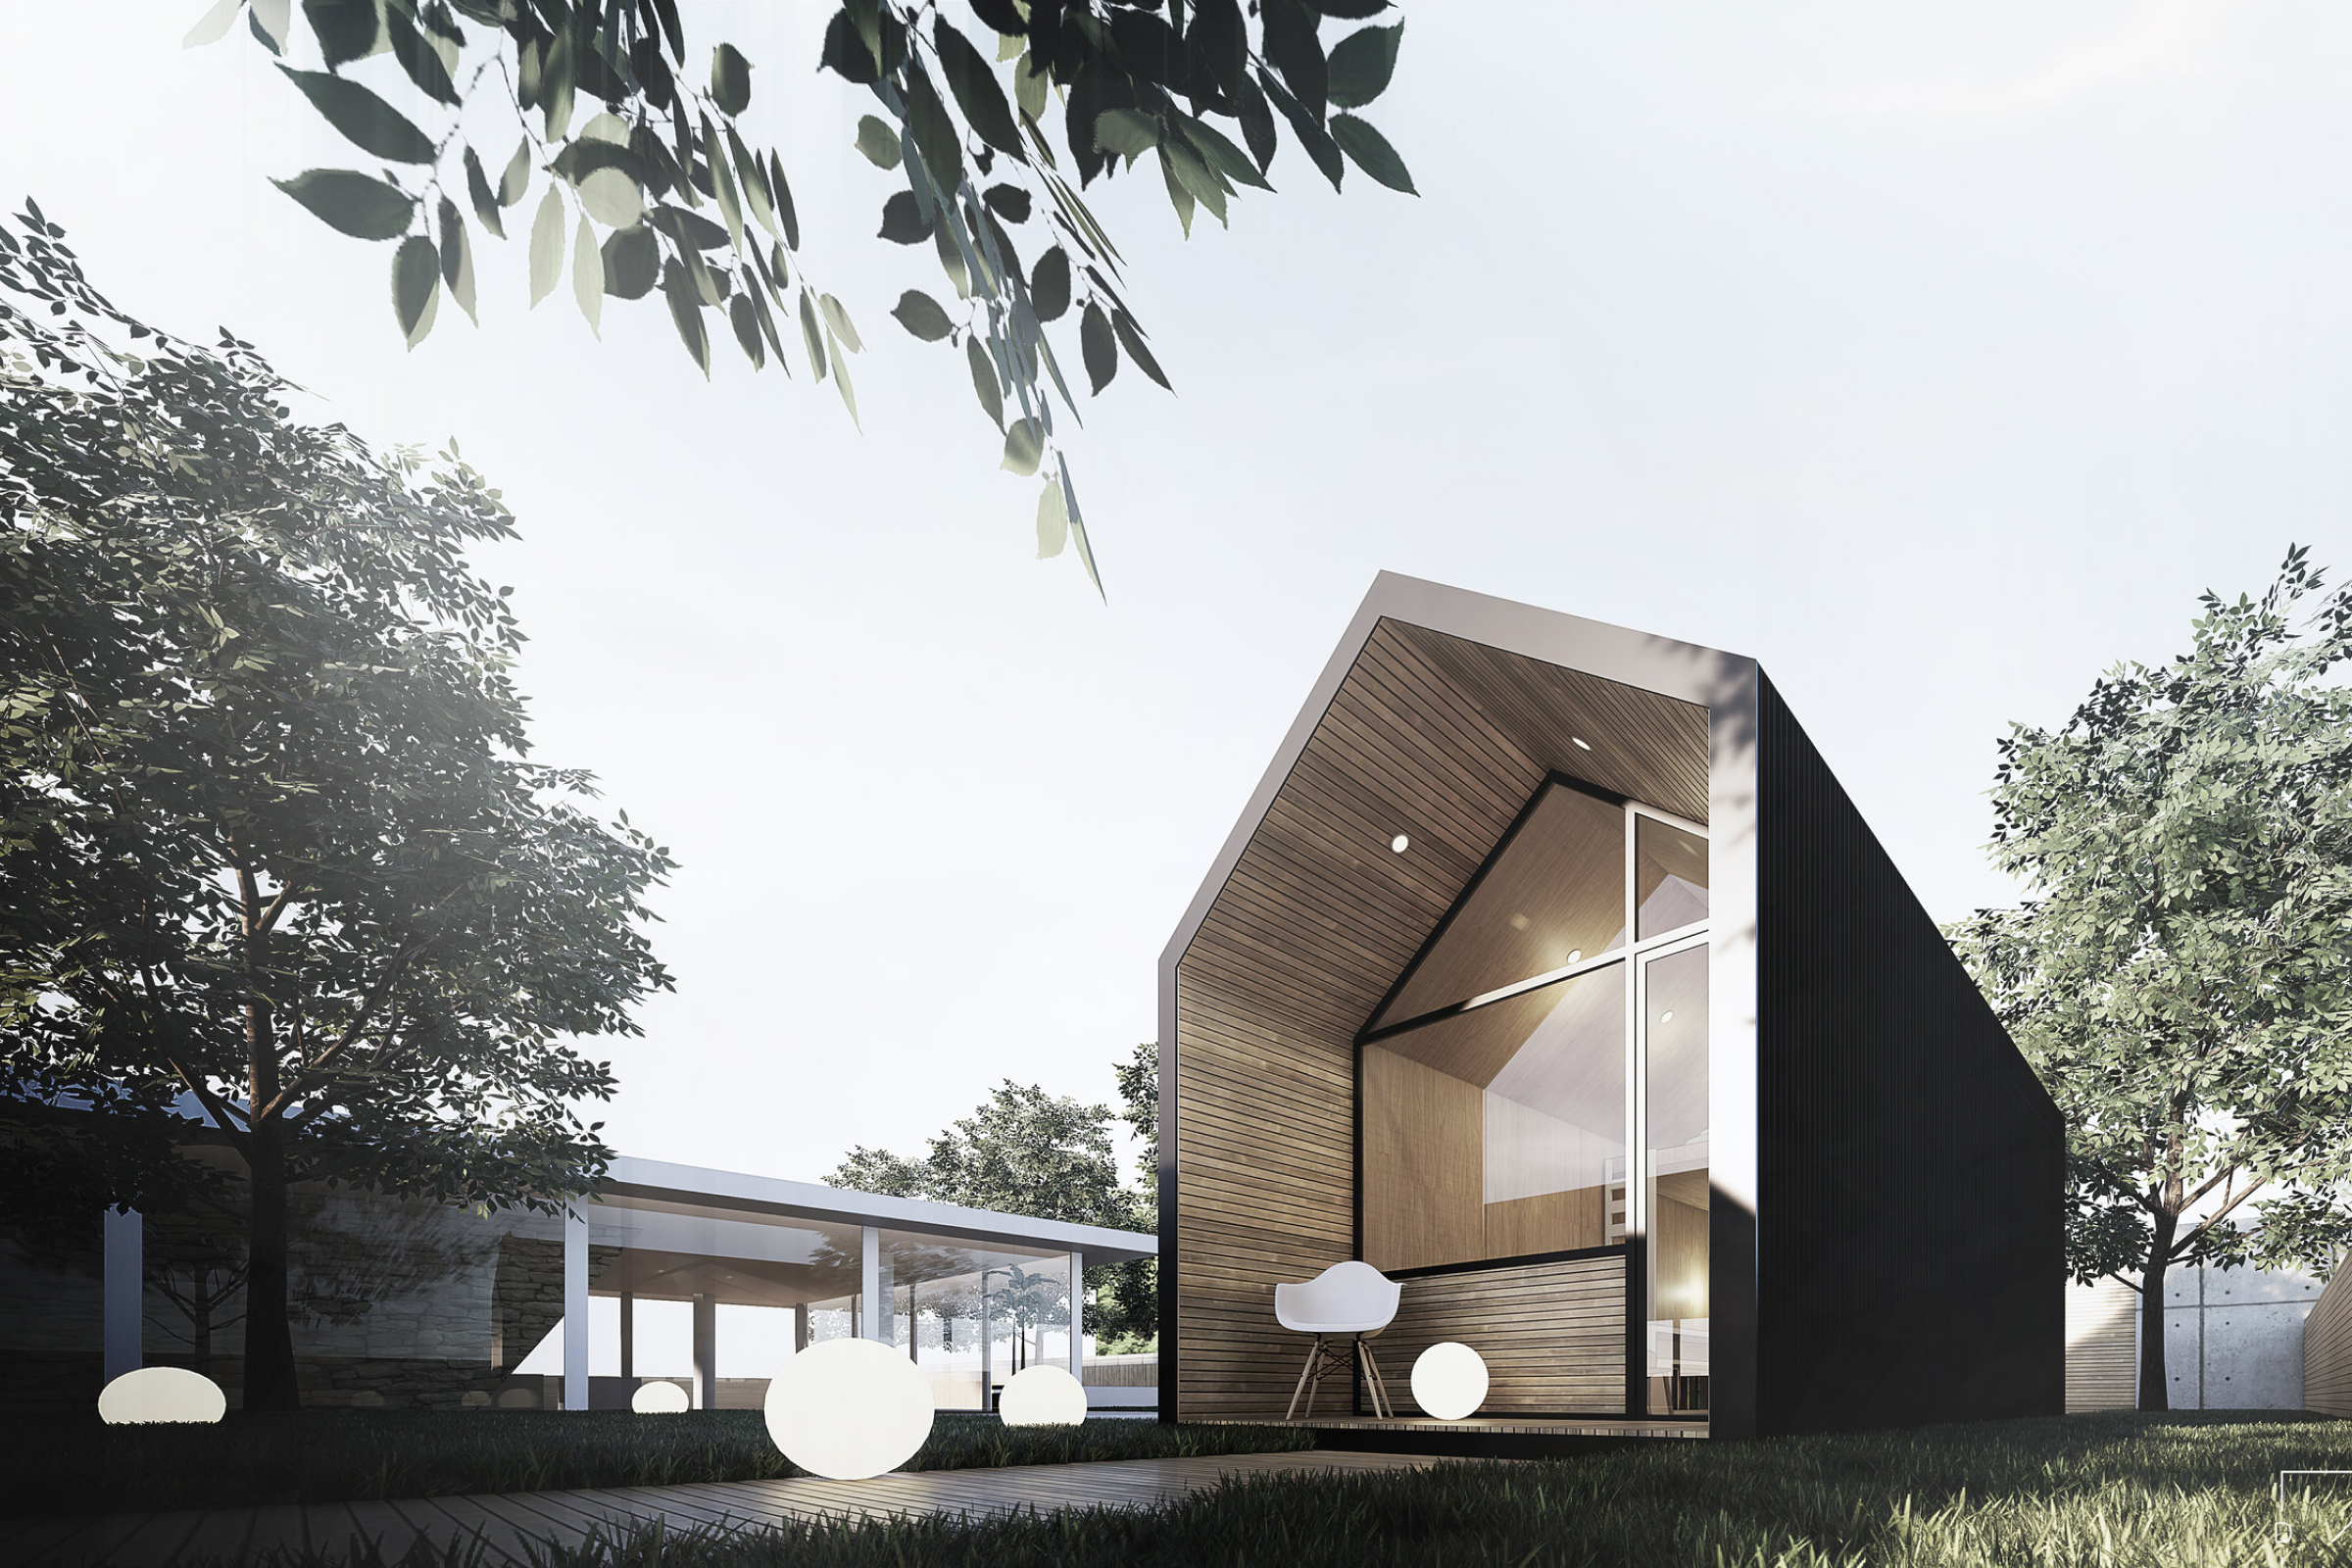 A modular home with the side facing the camera in a pentagon shape, a path leading to it through a garden, and lamps dotted around it.